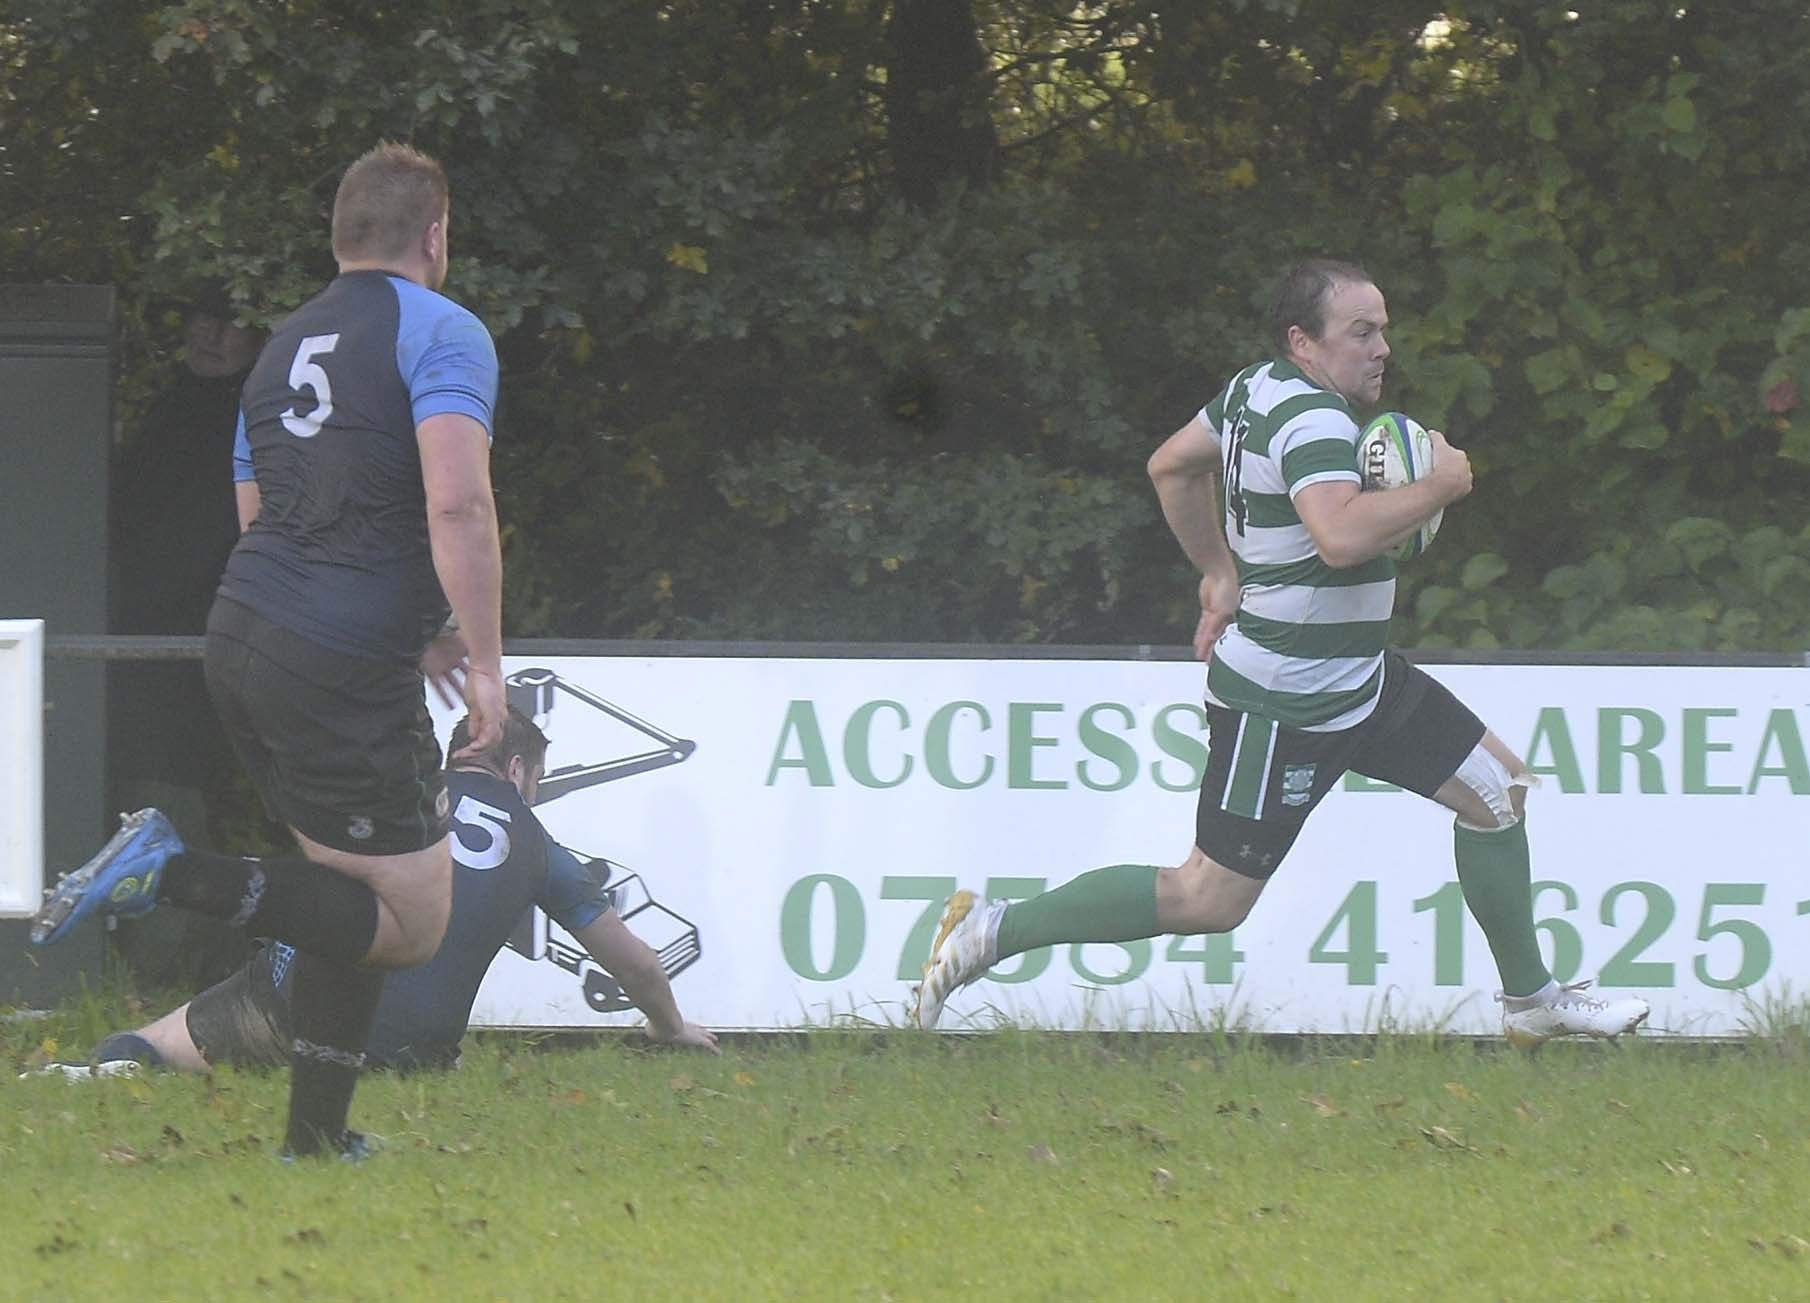 SOLE TRY: James Baker scored for Dorchester Picture: FINNBARR WEBSTER/F19291